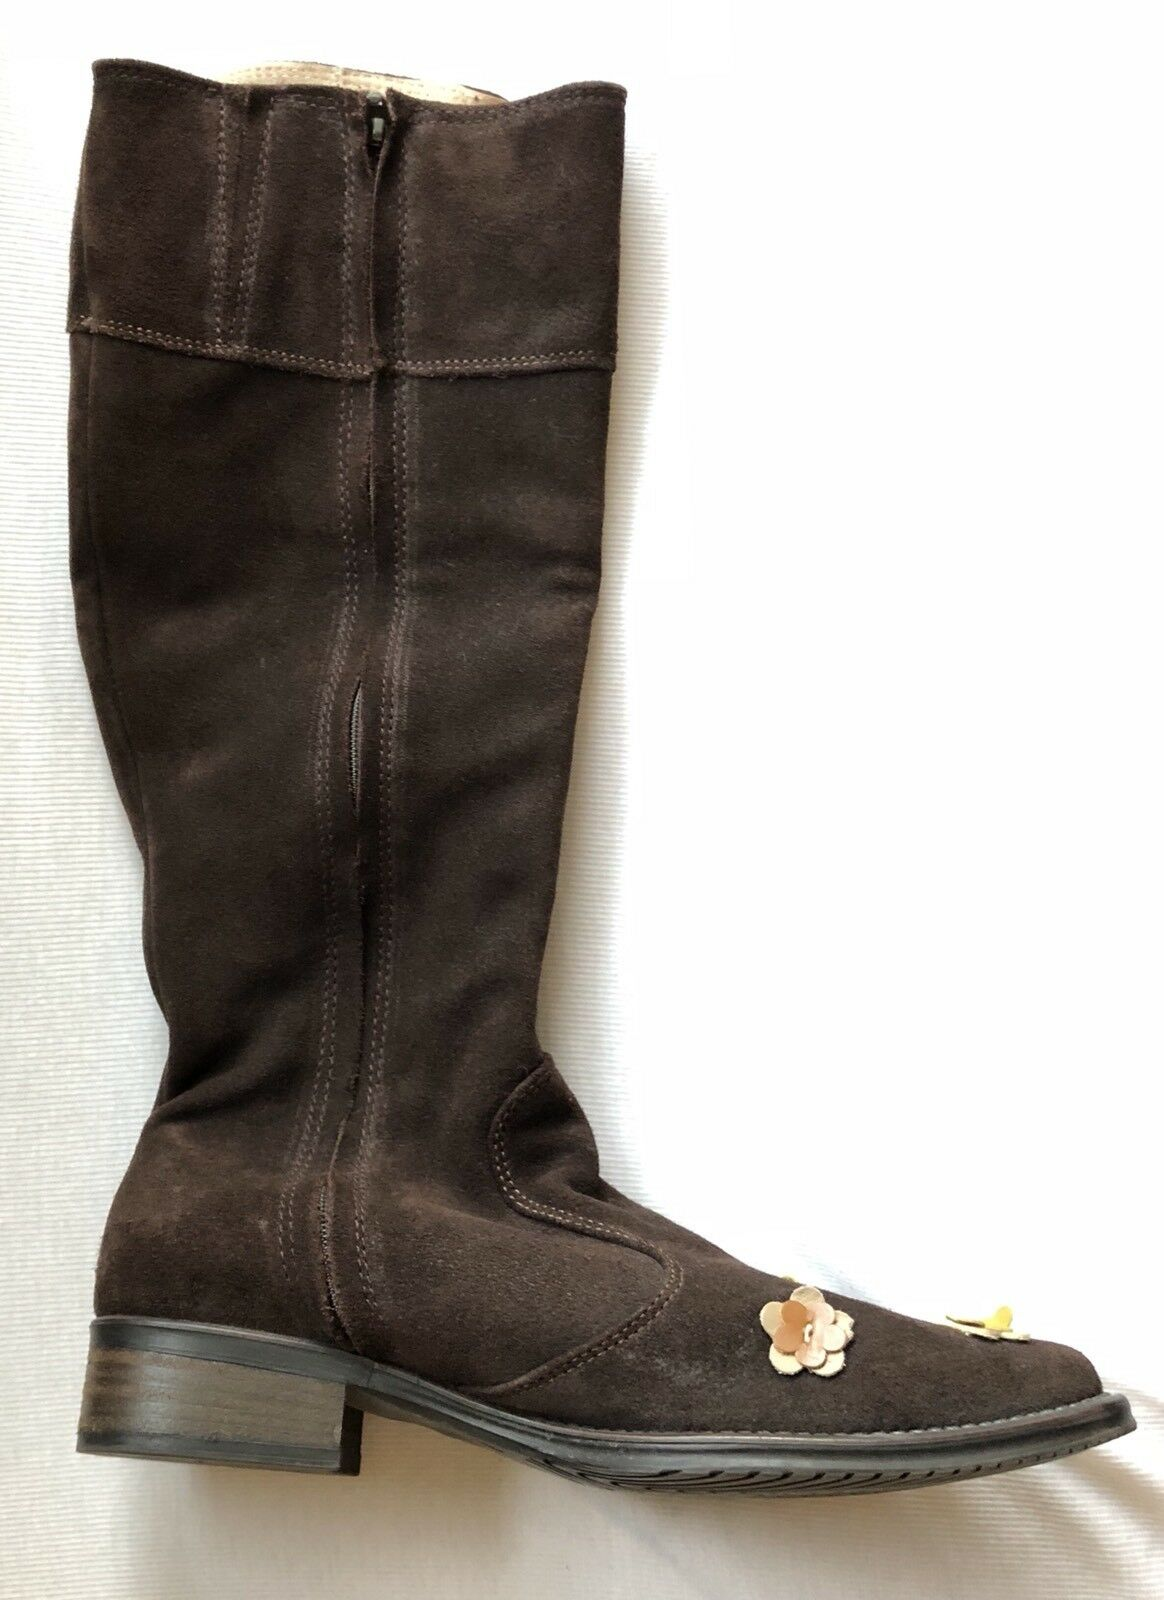 Pratesi Suede Italian Leather Floral Floral Floral Applique Tall Boots Size 37 7 568644